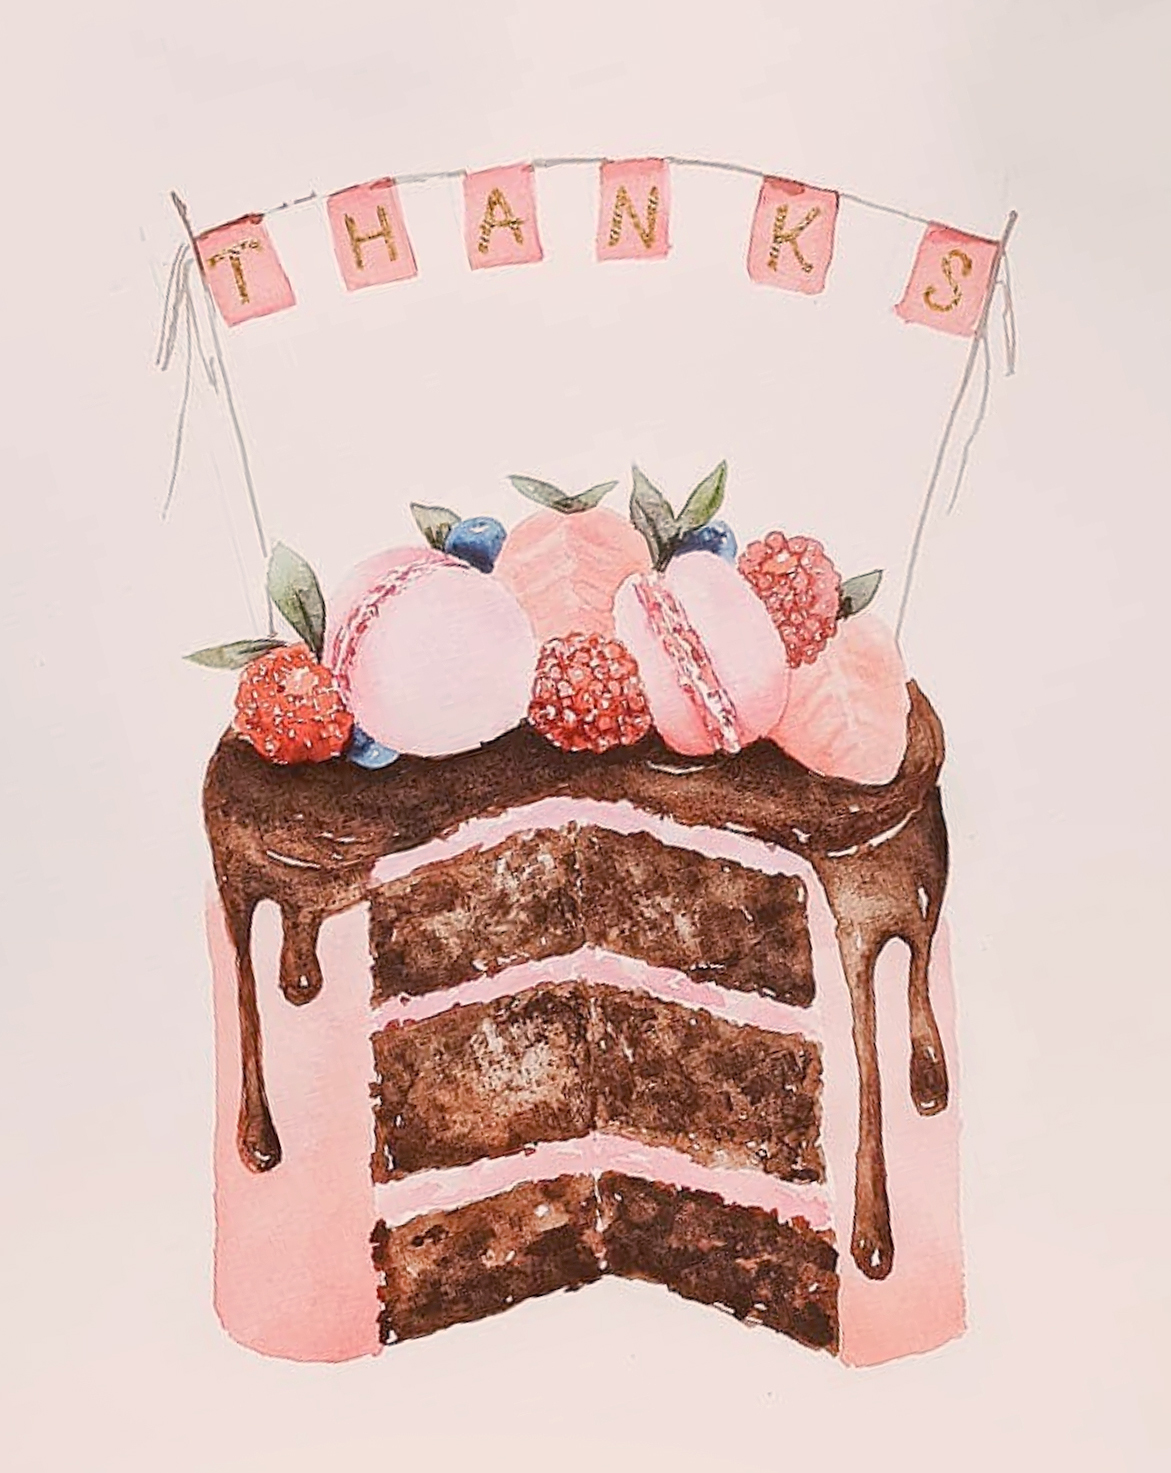 Alexandra-Motovilina_Thank-you-Cake